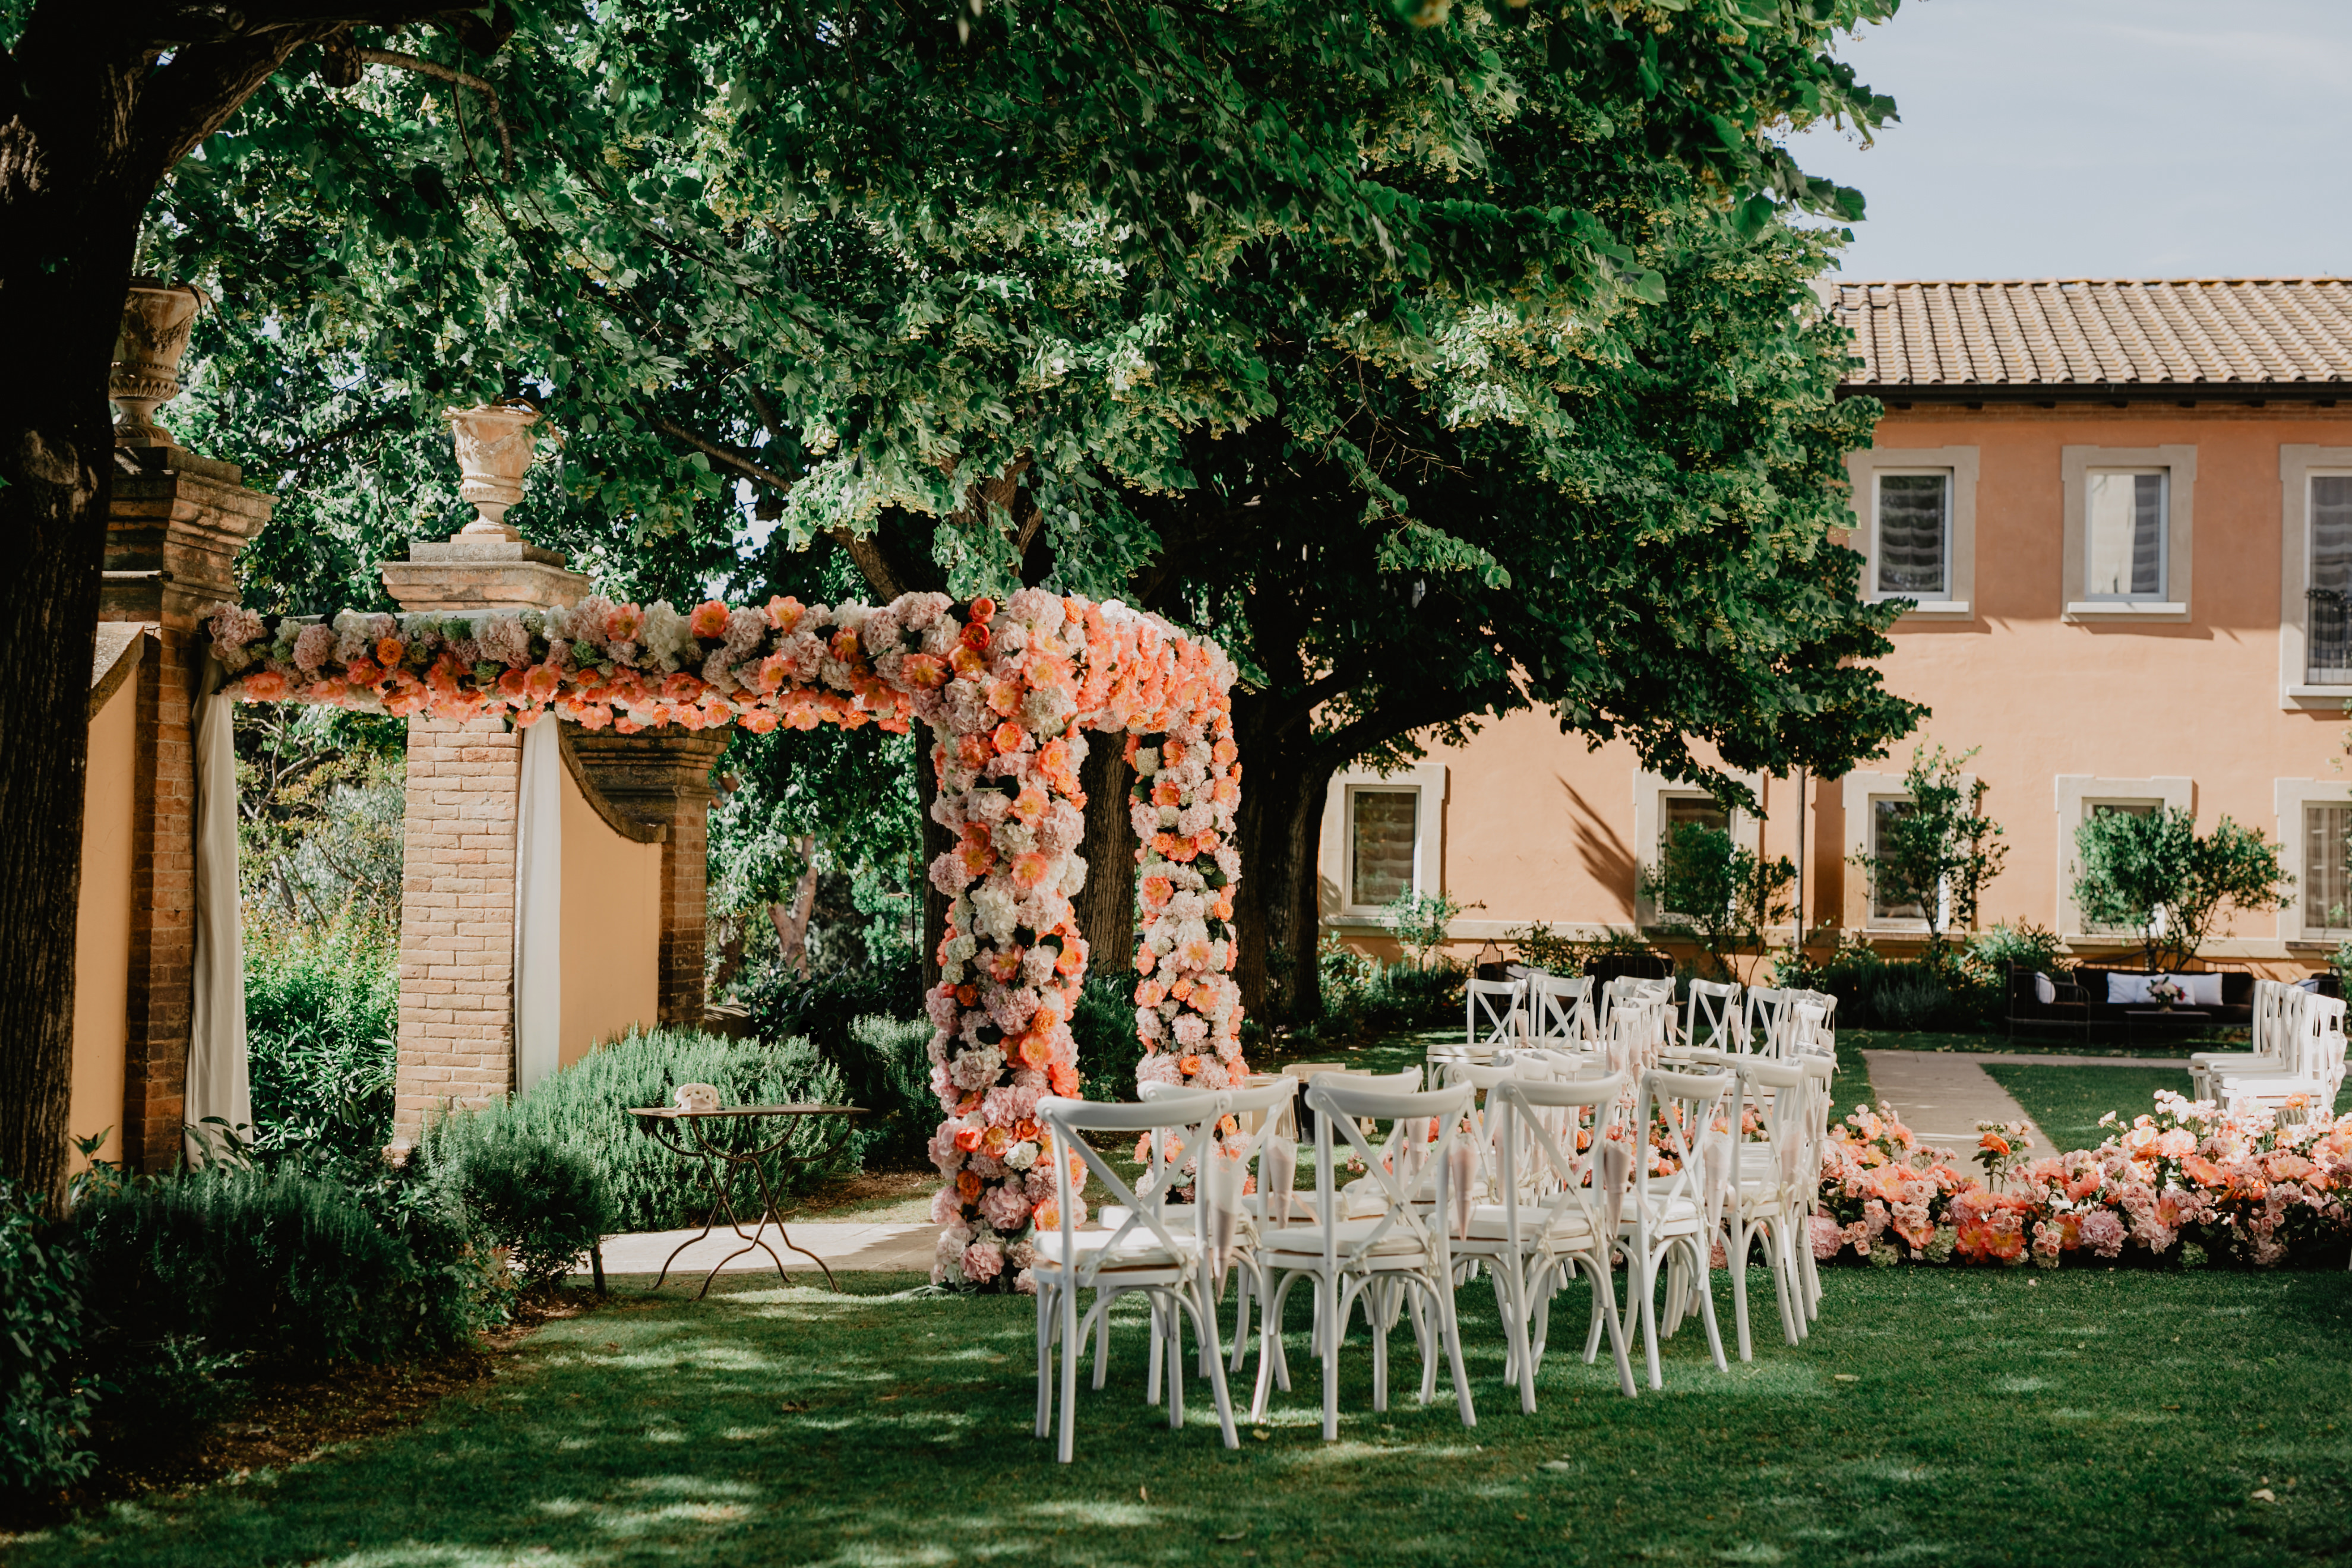 preparation of the outdoor location for the wedding in a Tuscan villa